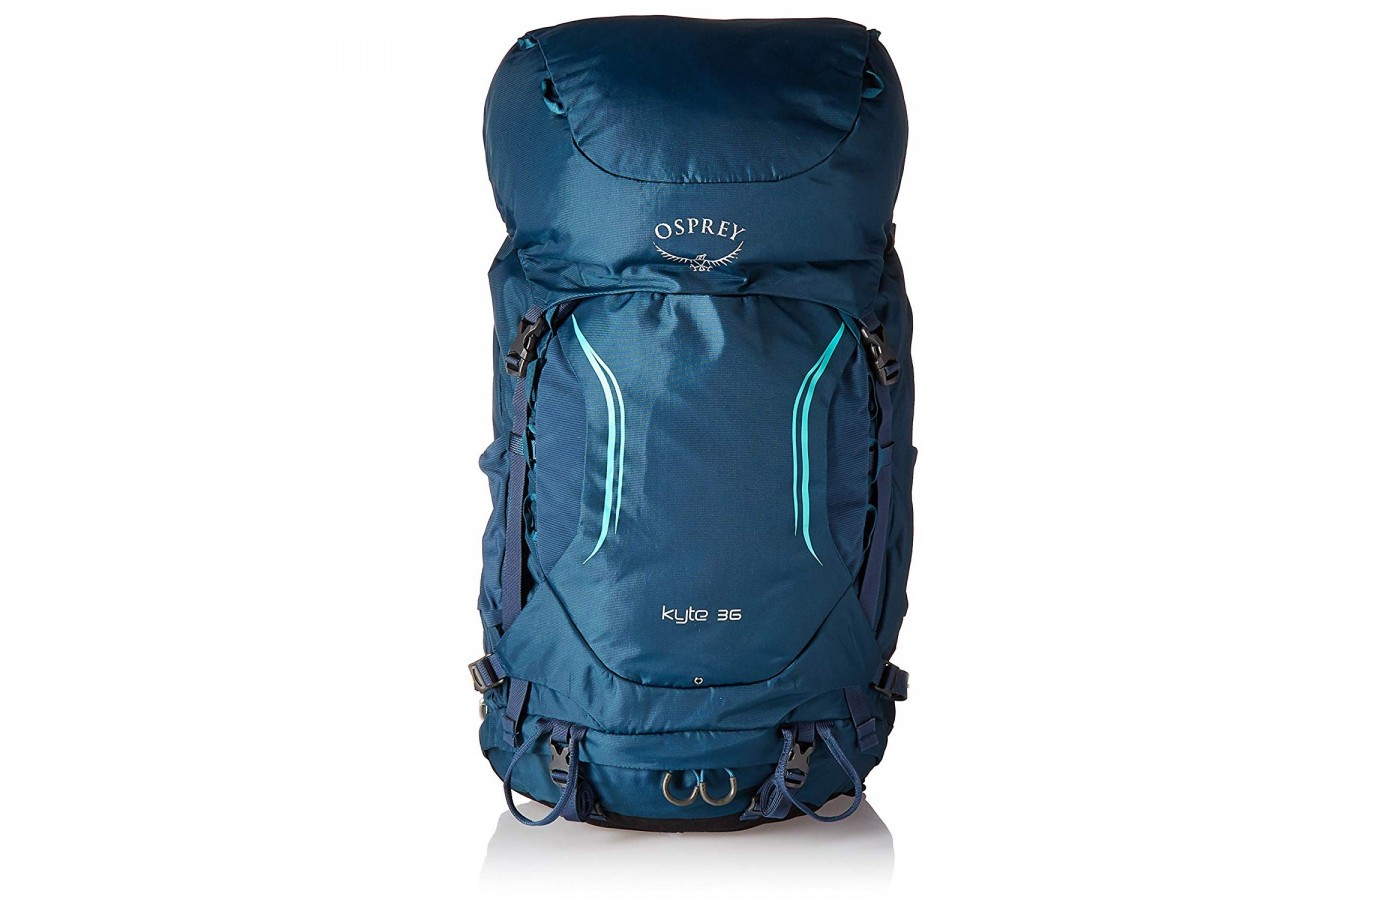 The Osprey Kyte 36 offers a durable design for extended use.